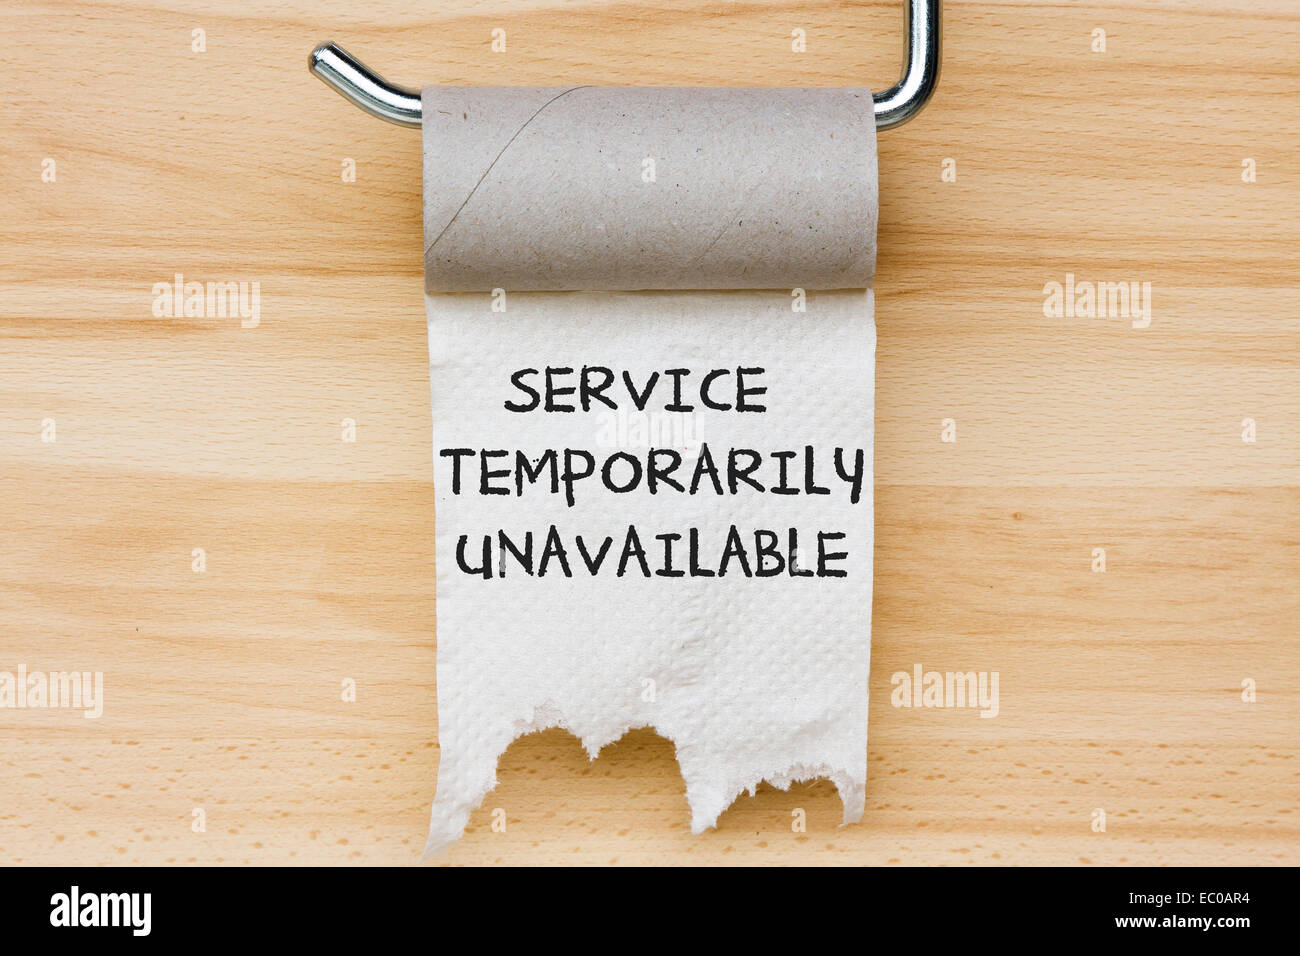 Service Temporarily Unavailable Toilet Paper As Web Message Stock